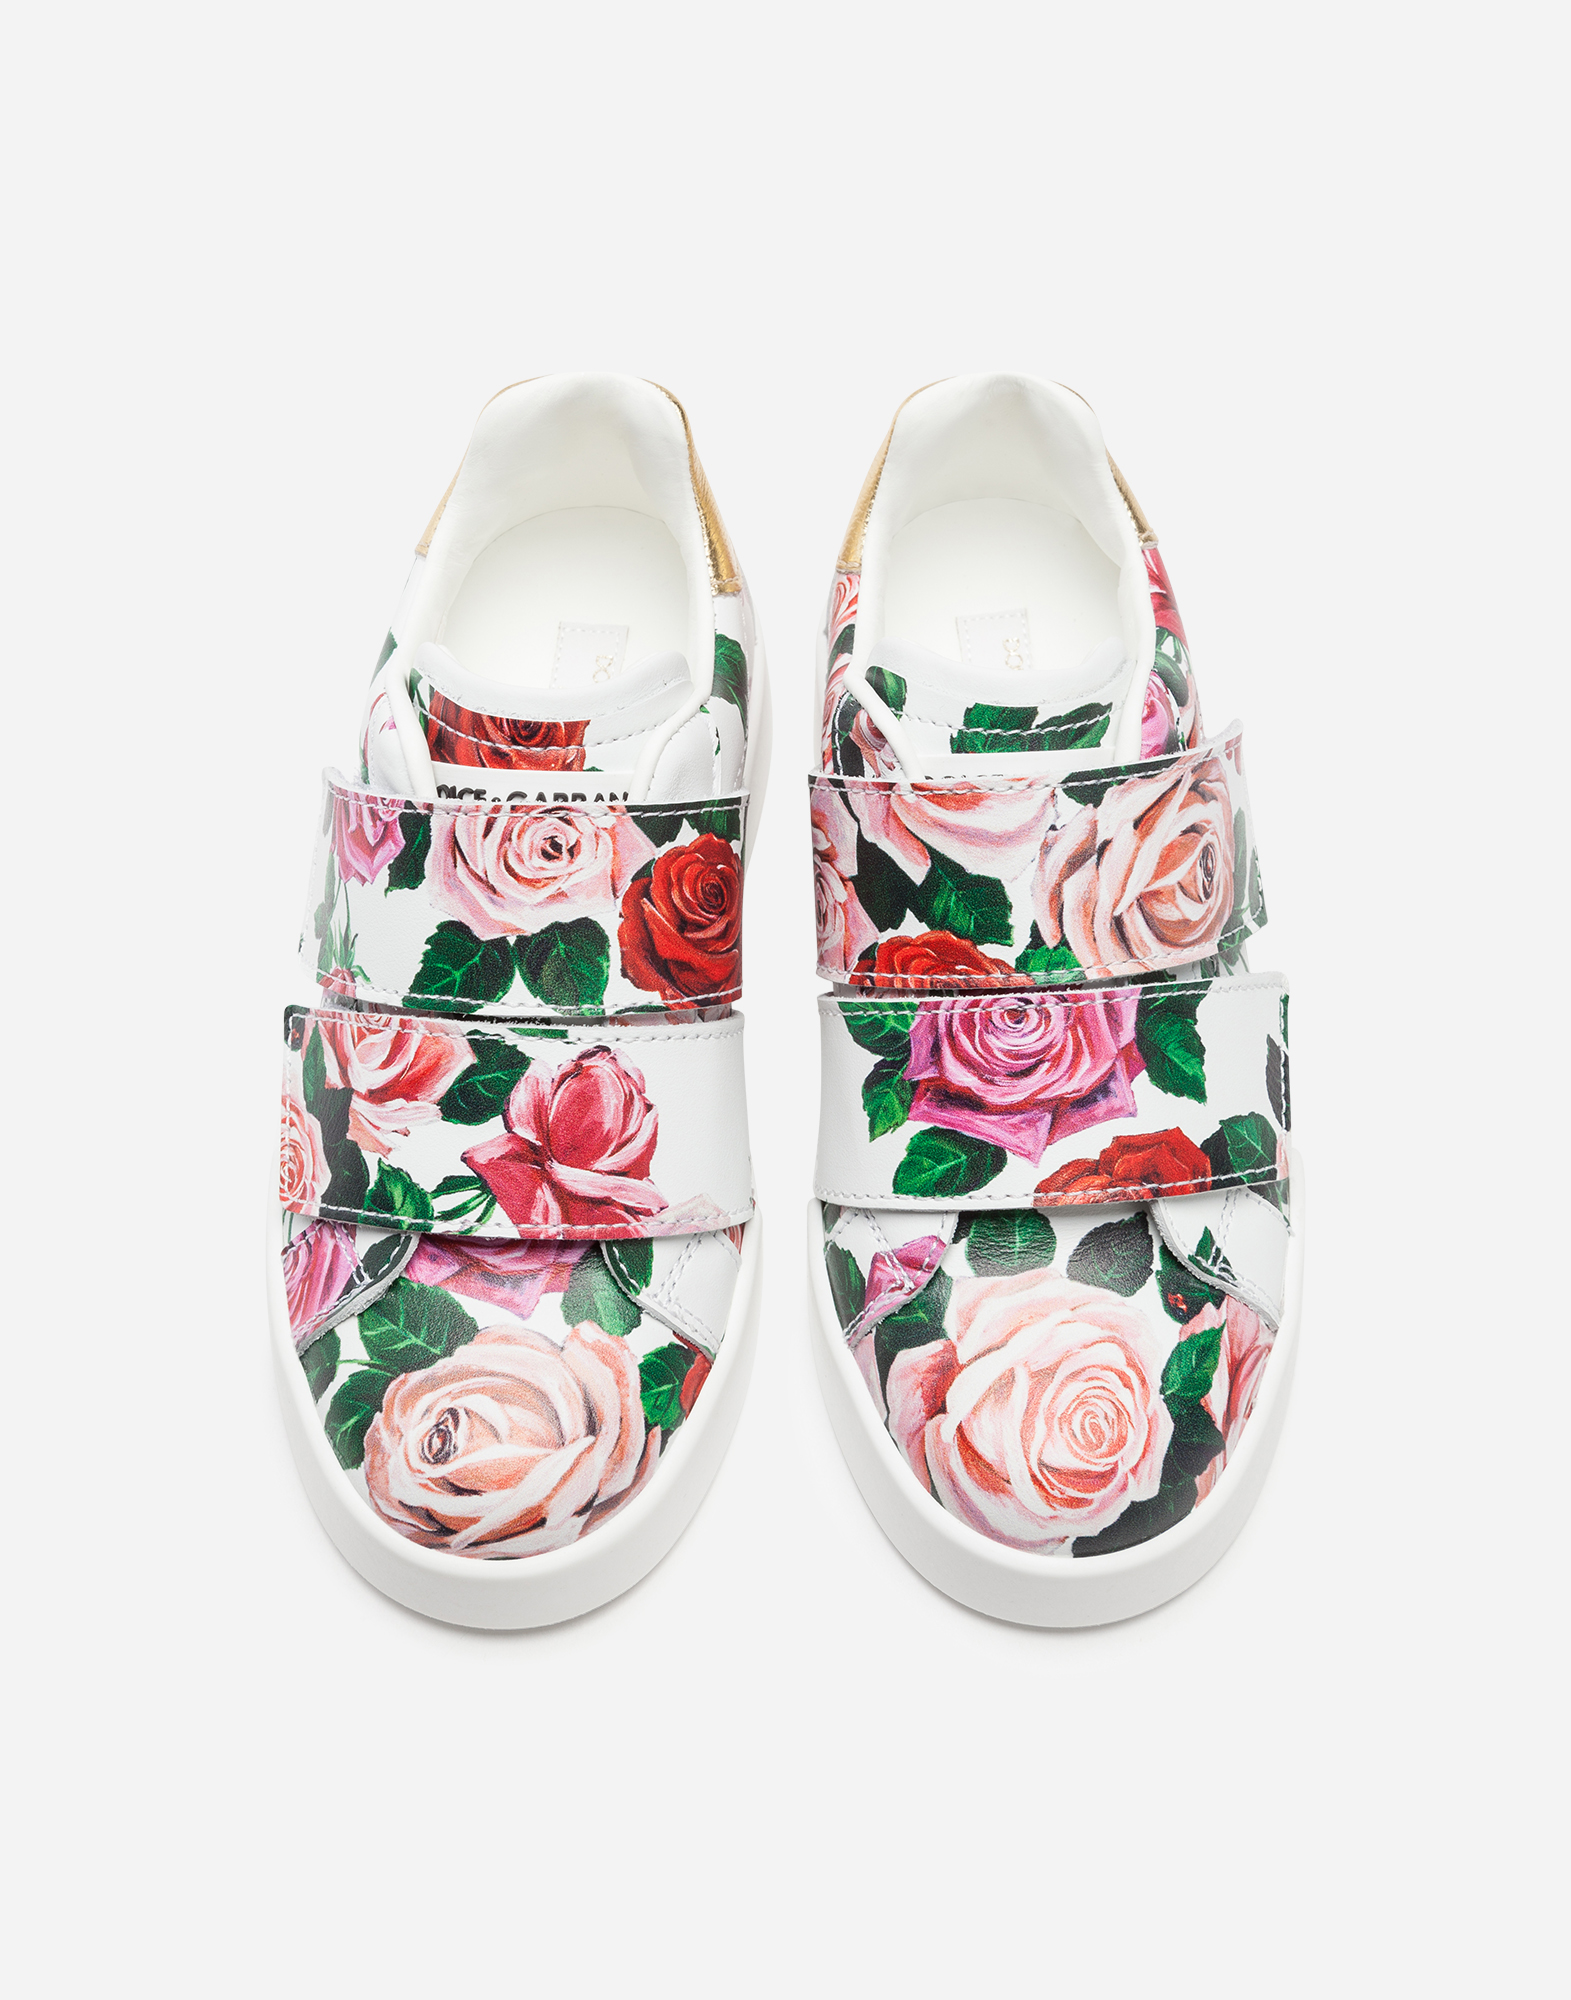 Dolce & Gabbana PORTOFINO LIGHT SNEAKERS IN PRINTED NAPPA